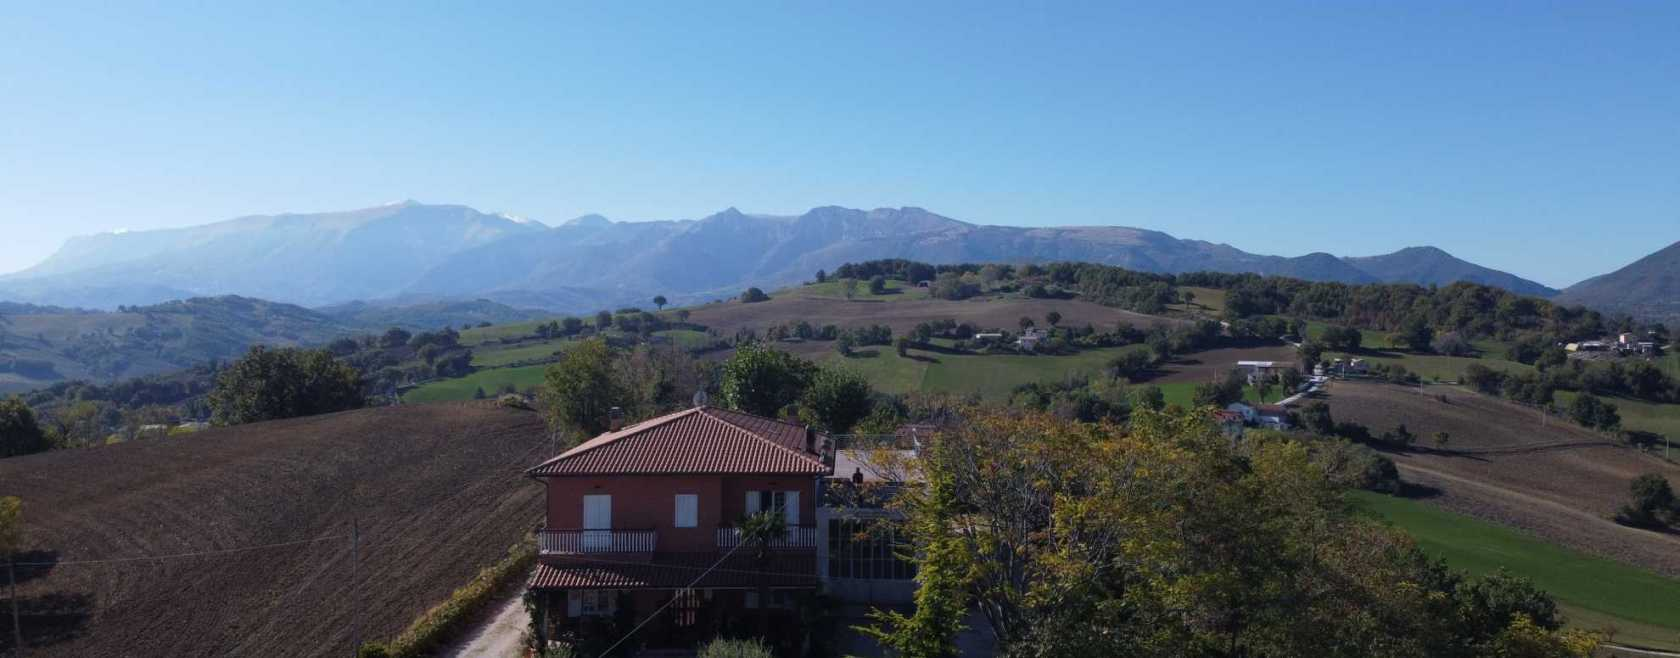 Detached House with land San ginesio  (MC)